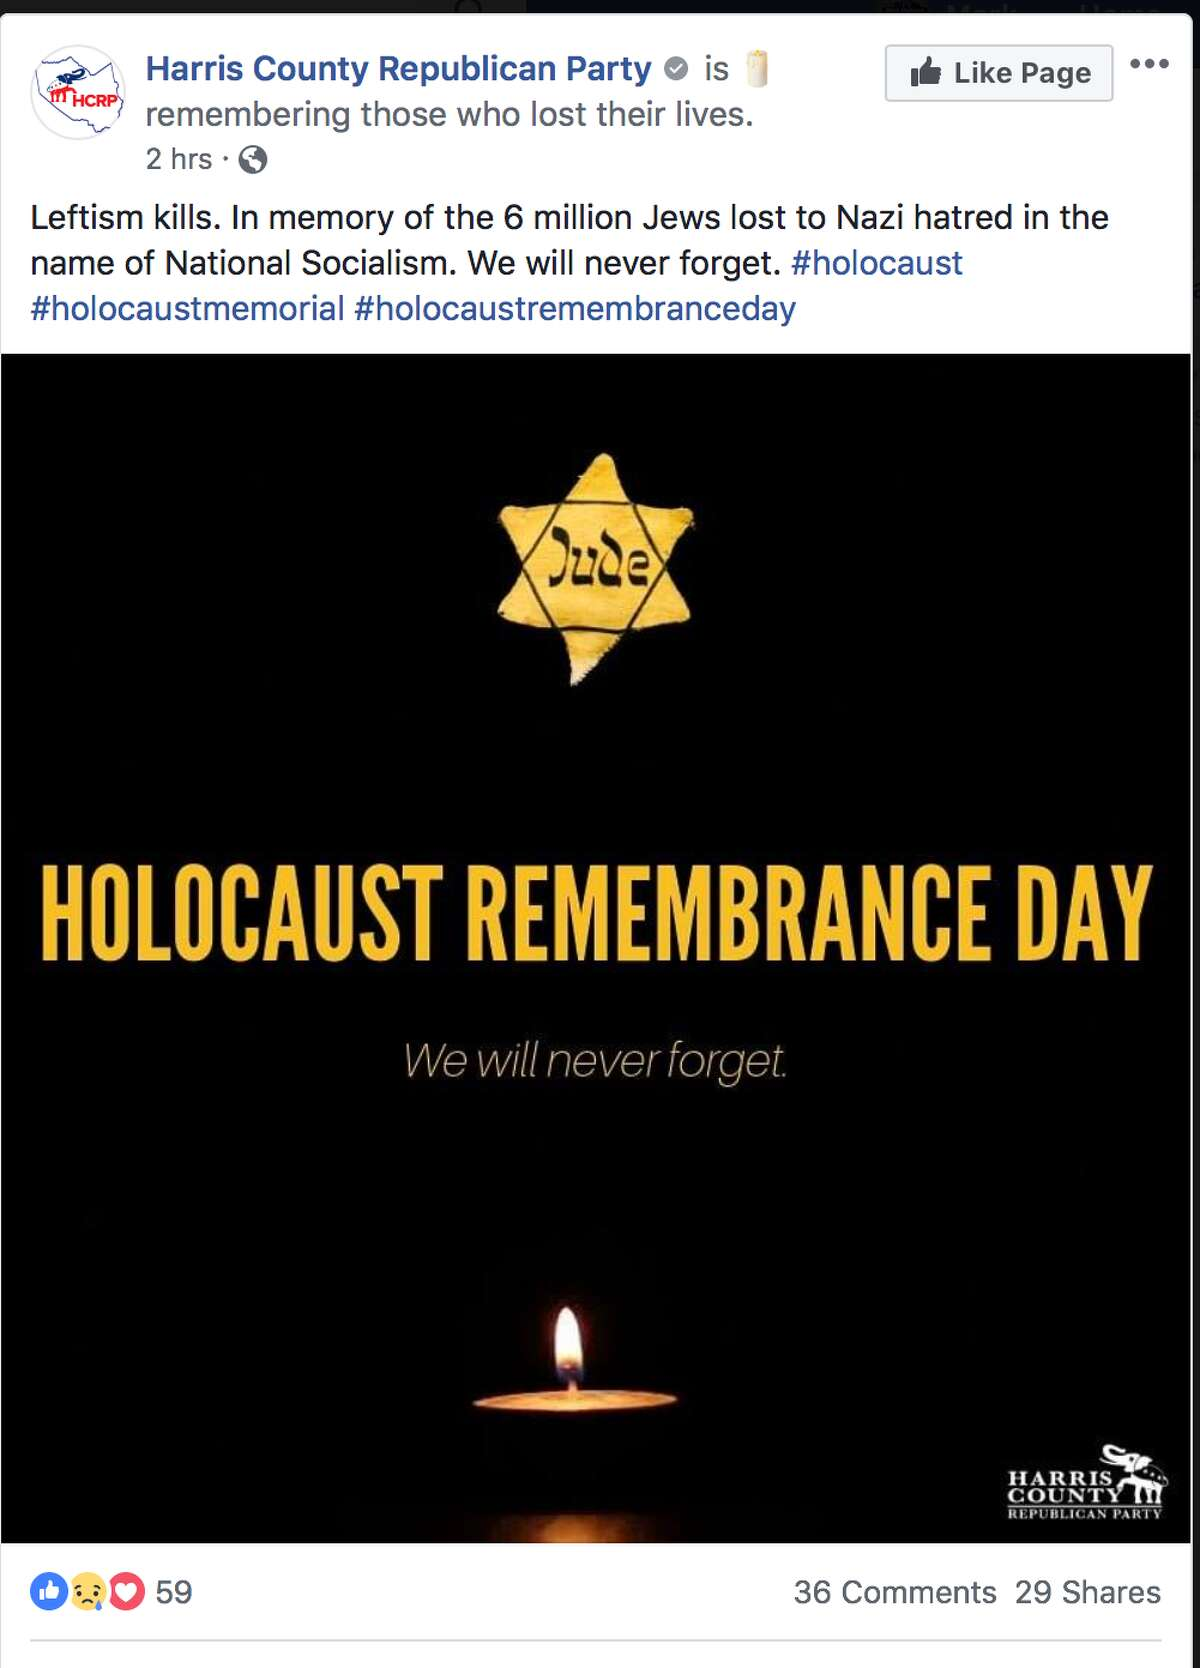 Harris County Republican Party's Holocaust post on its Facebook page earlier Sunday. It has since been removed.